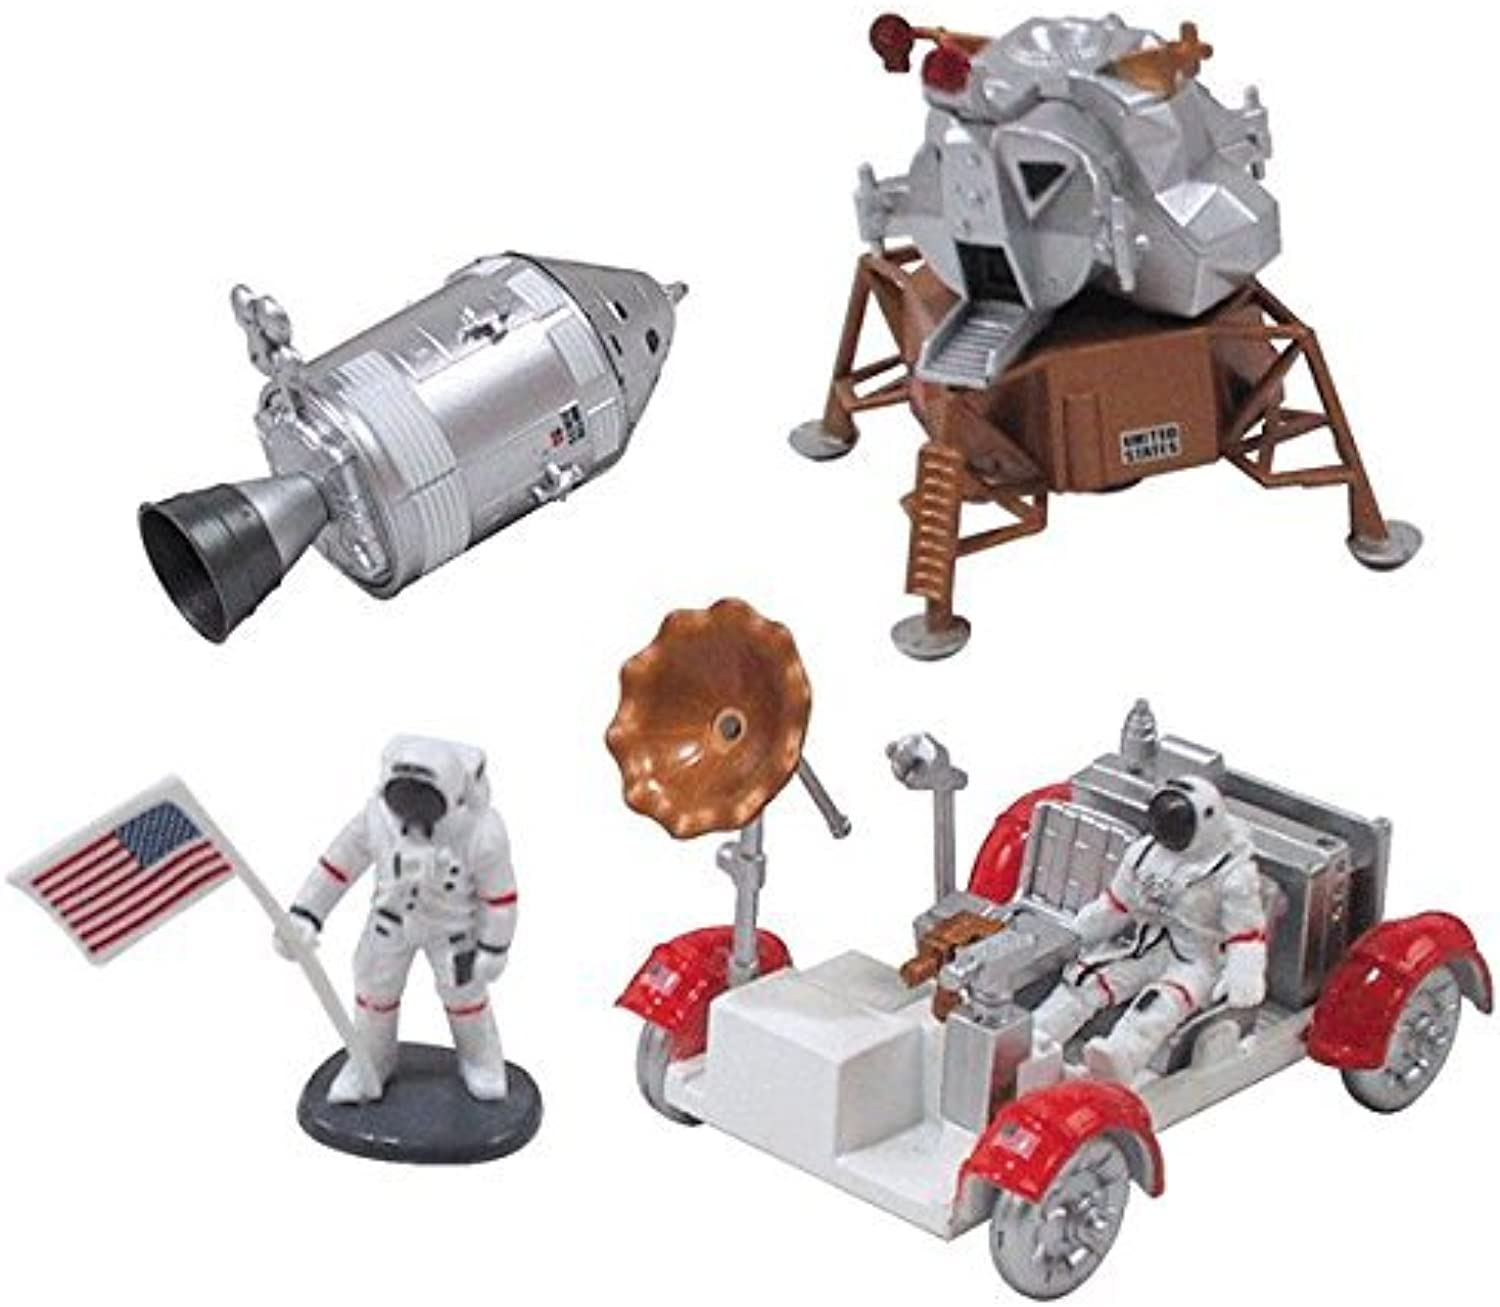 InAir E-Z Build Model Kit - Apollo Lunar Module with Lunar Rover